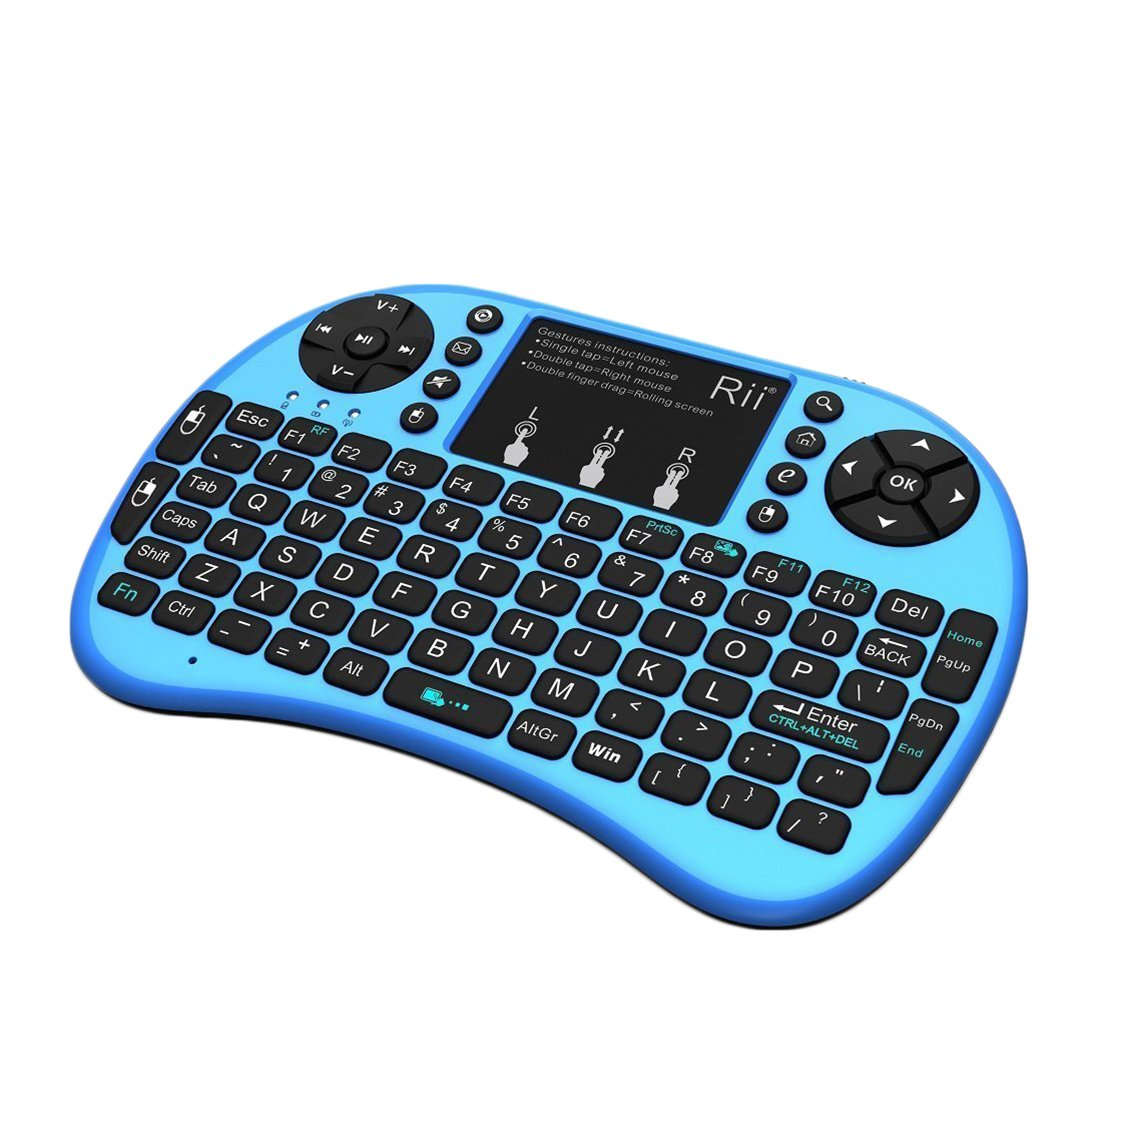 Rii i8+ Mini Wireless 2.4G Back Light Touchpad Keyboard with Mouse for PC/Mac/Android, Blue (MWK08+)